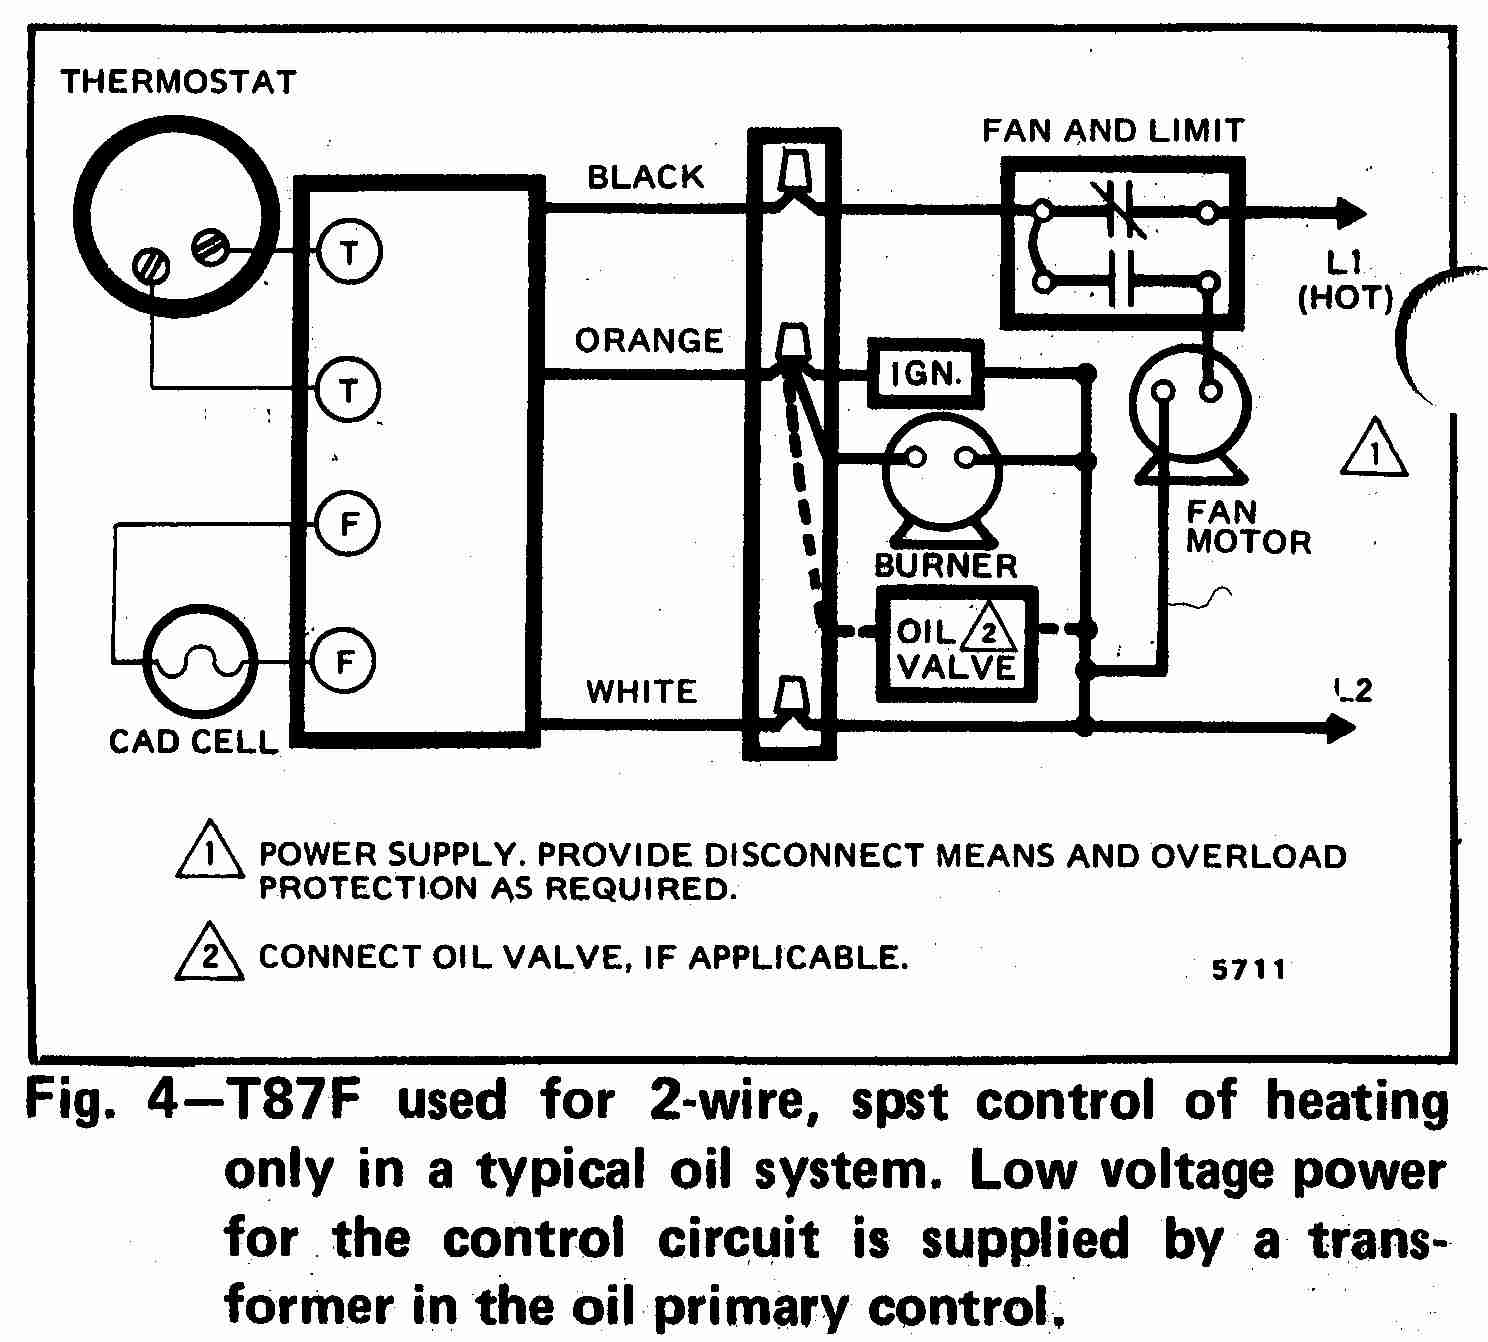 TT_T87F_0002_2W_DJF room thermostat wiring diagrams for hvac systems imit boiler thermostat wiring diagram at eliteediting.co